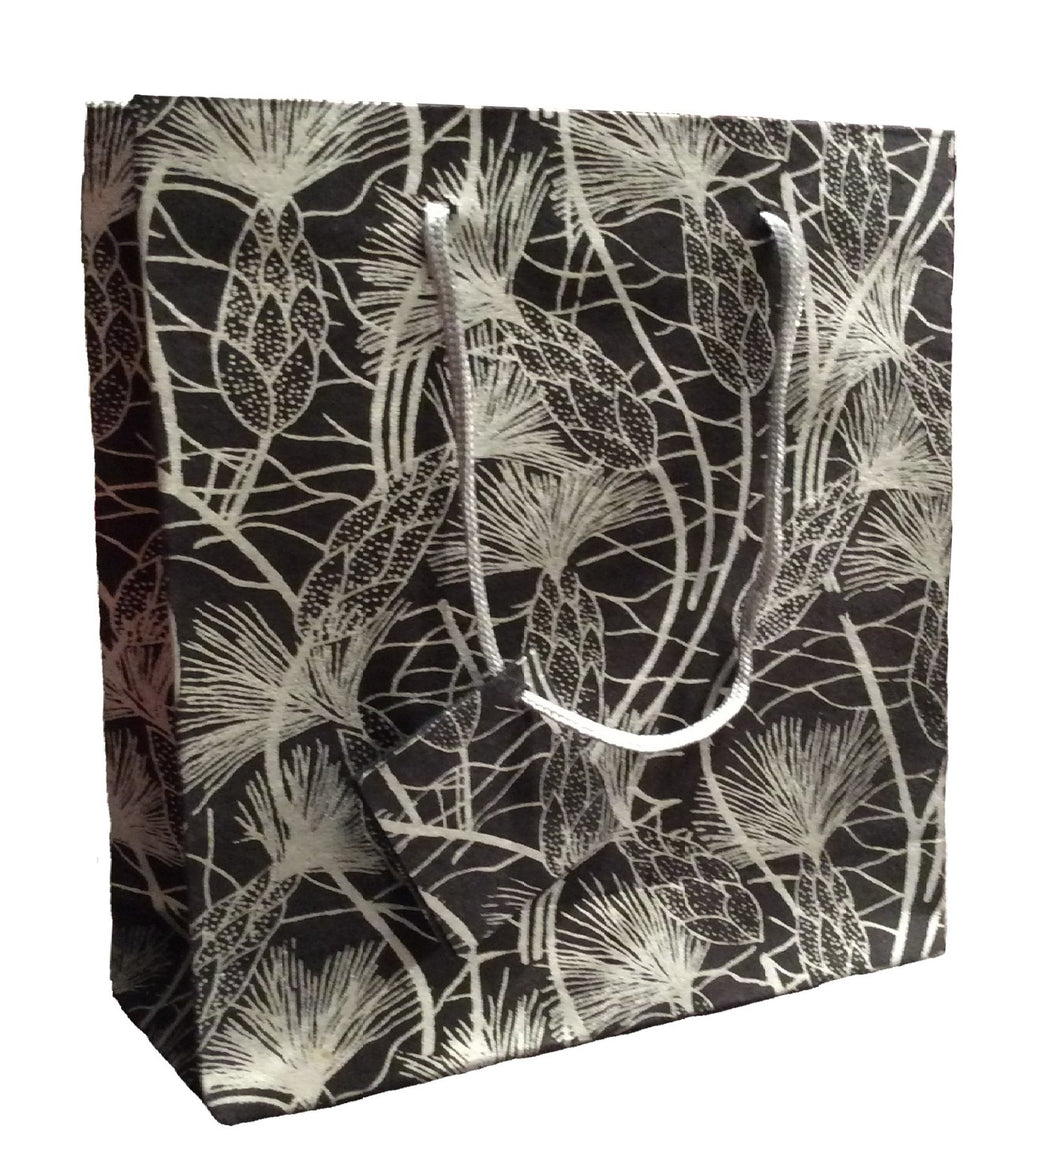 Set of Six Recycled Cotton Gift Bags with Tag in Black Beach Grass Design